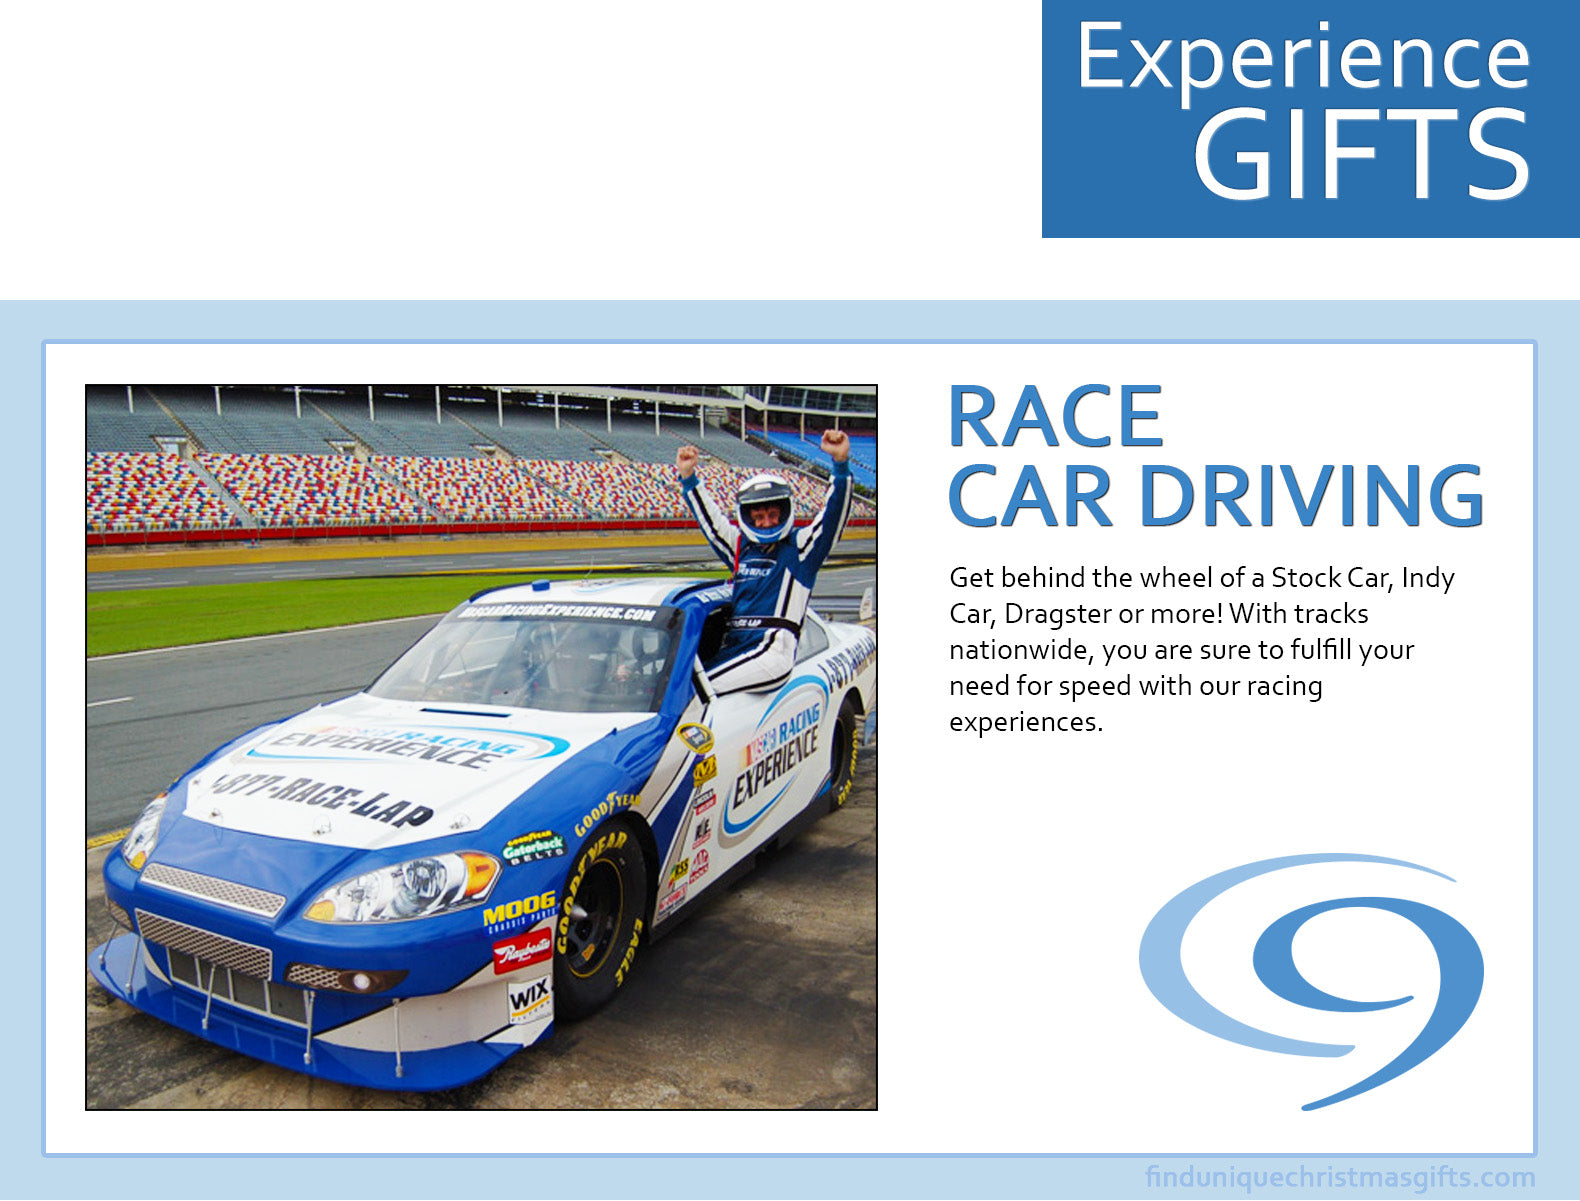 Race Car Driving - Experience Gifts Cloud 9 Living - Find Unique ...